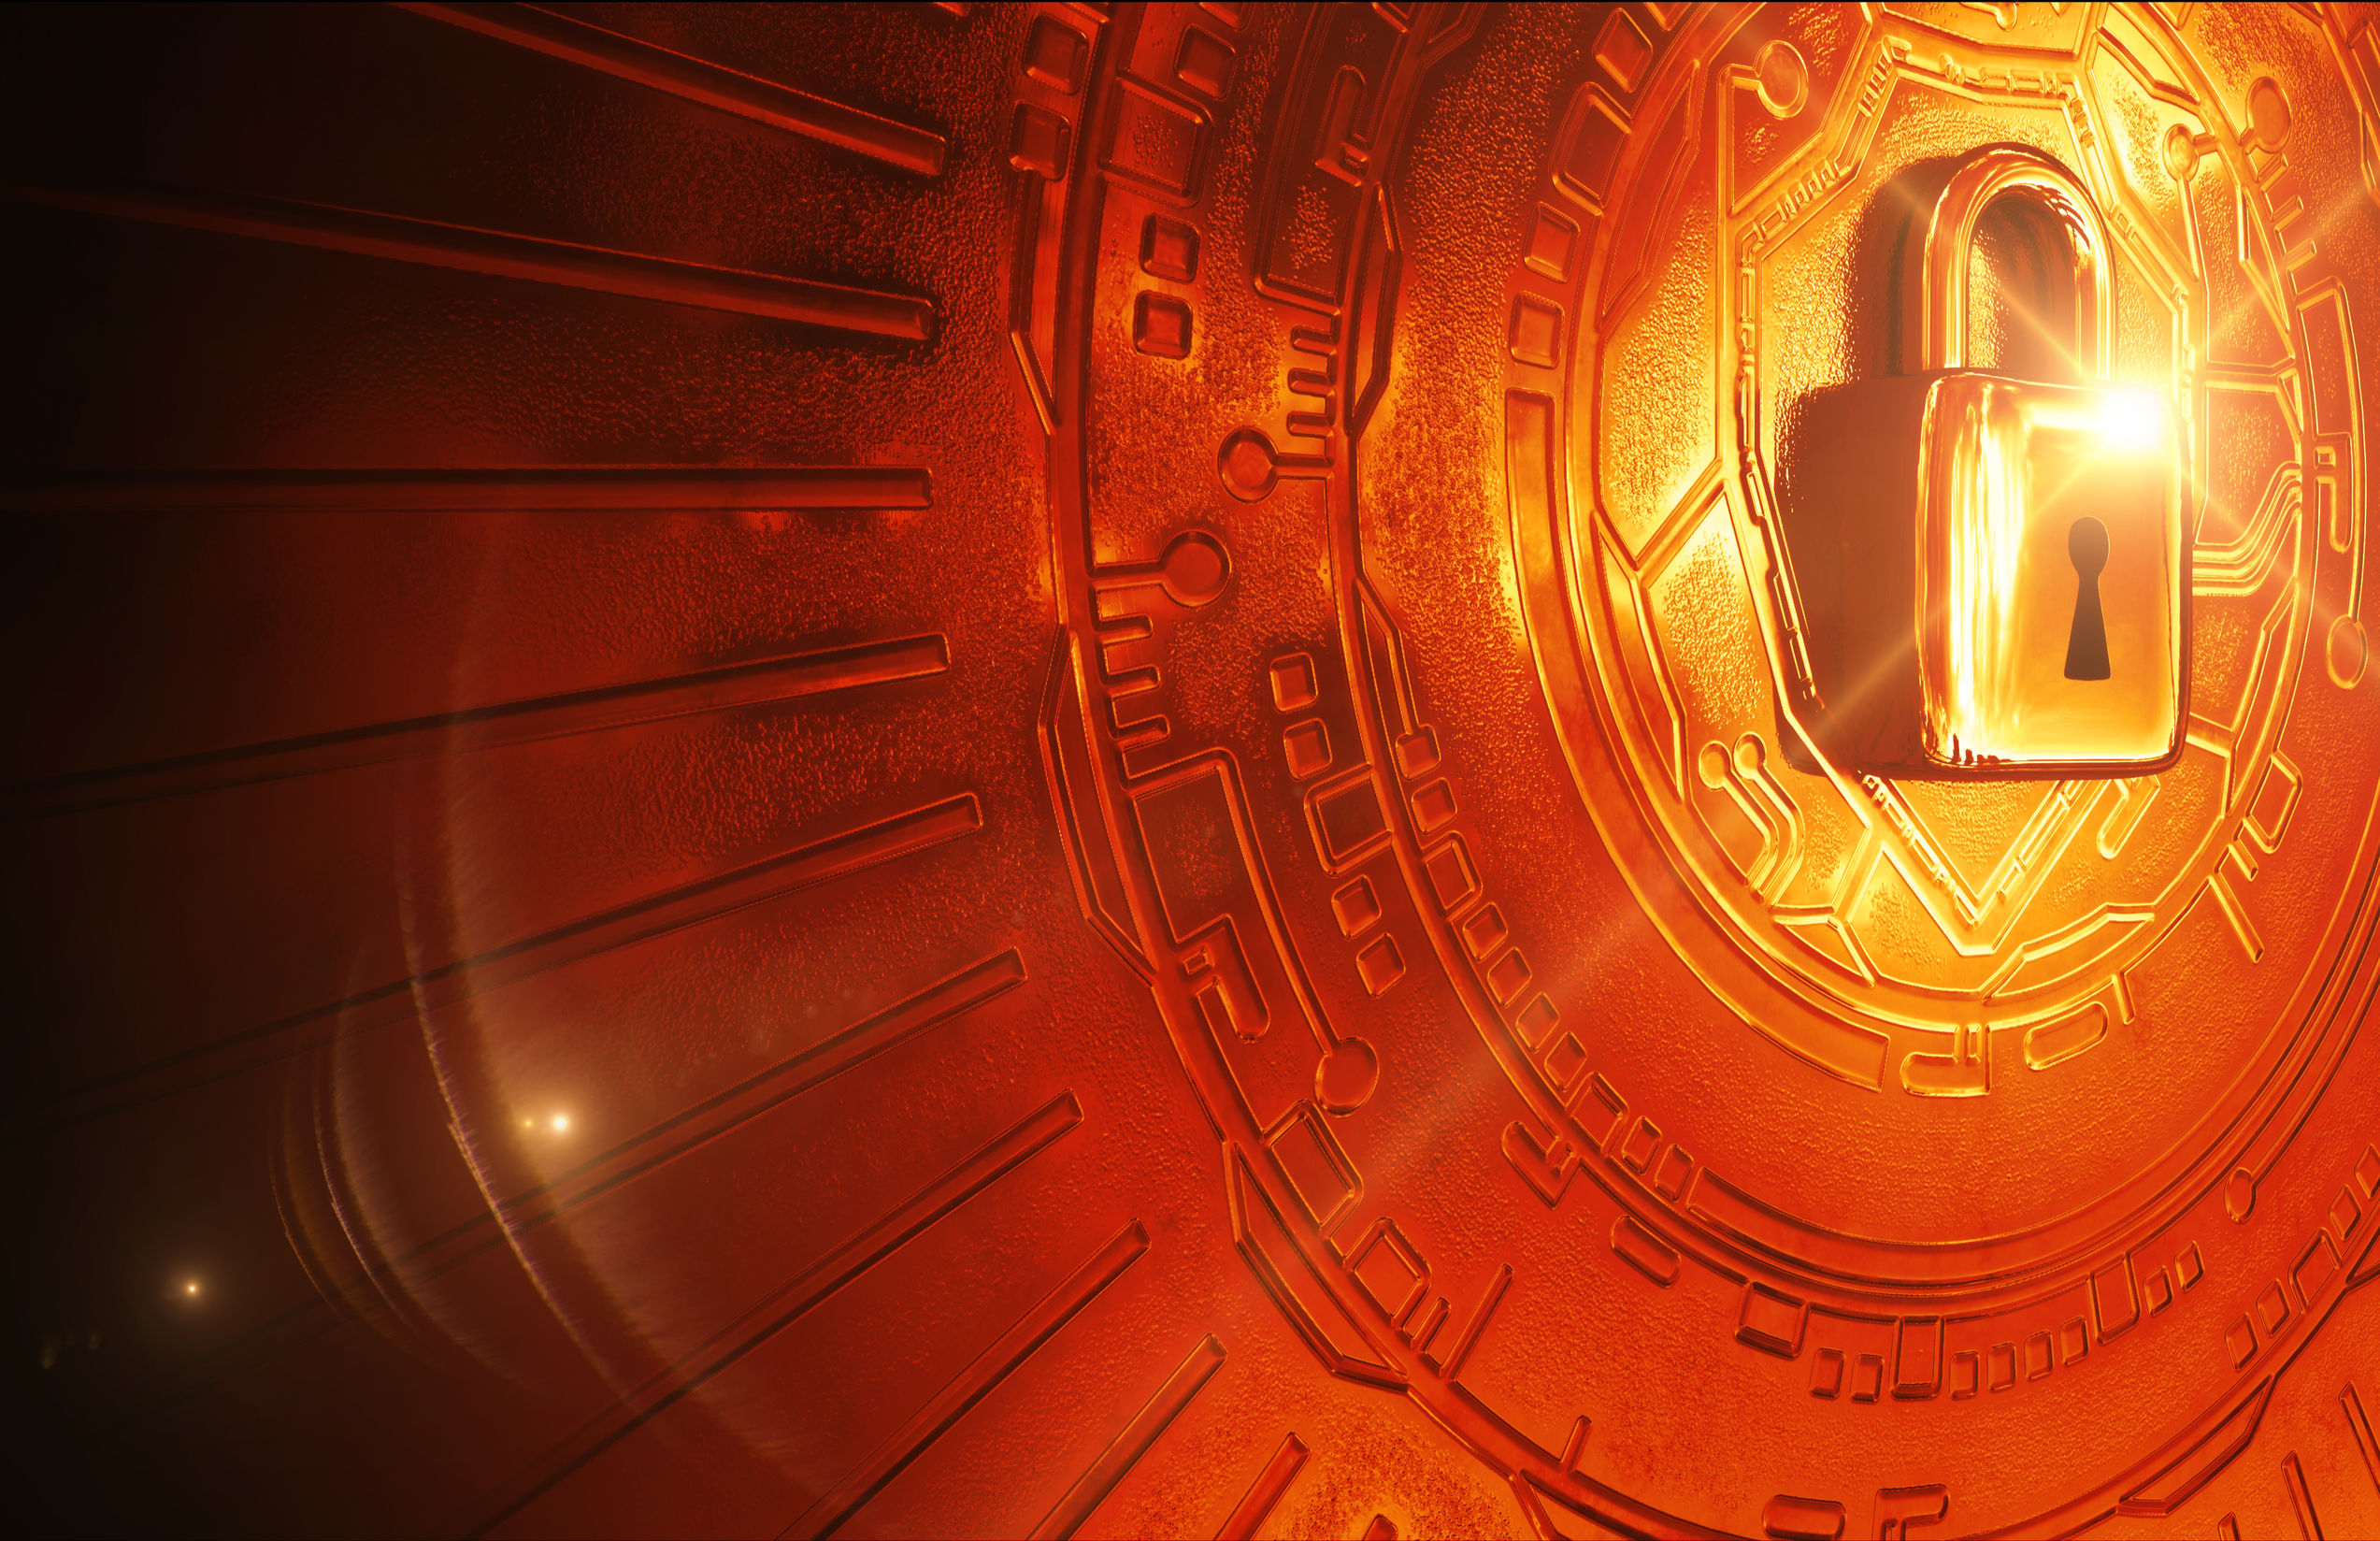 Conceptual cybersecurity image: a 3d modeled rendering of a padlock on a metallic tech background